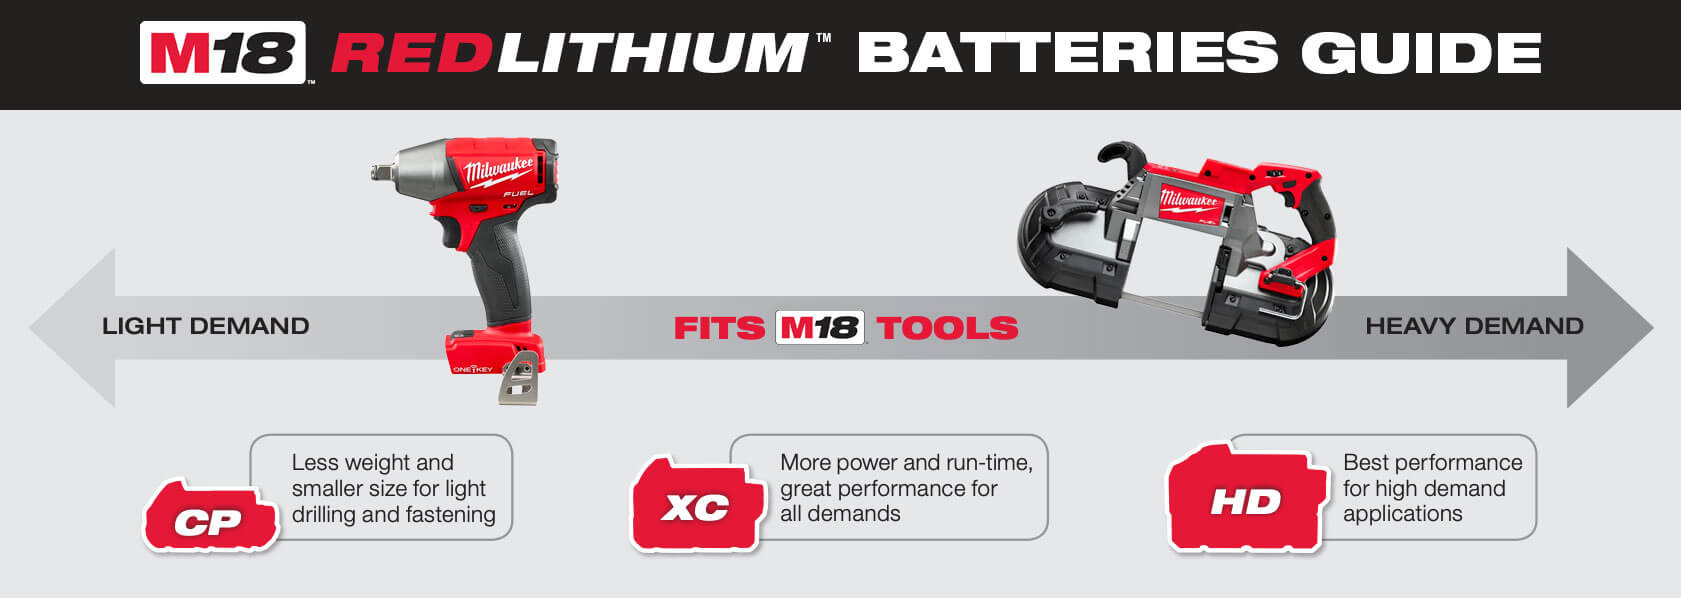 M18 Battery Guide